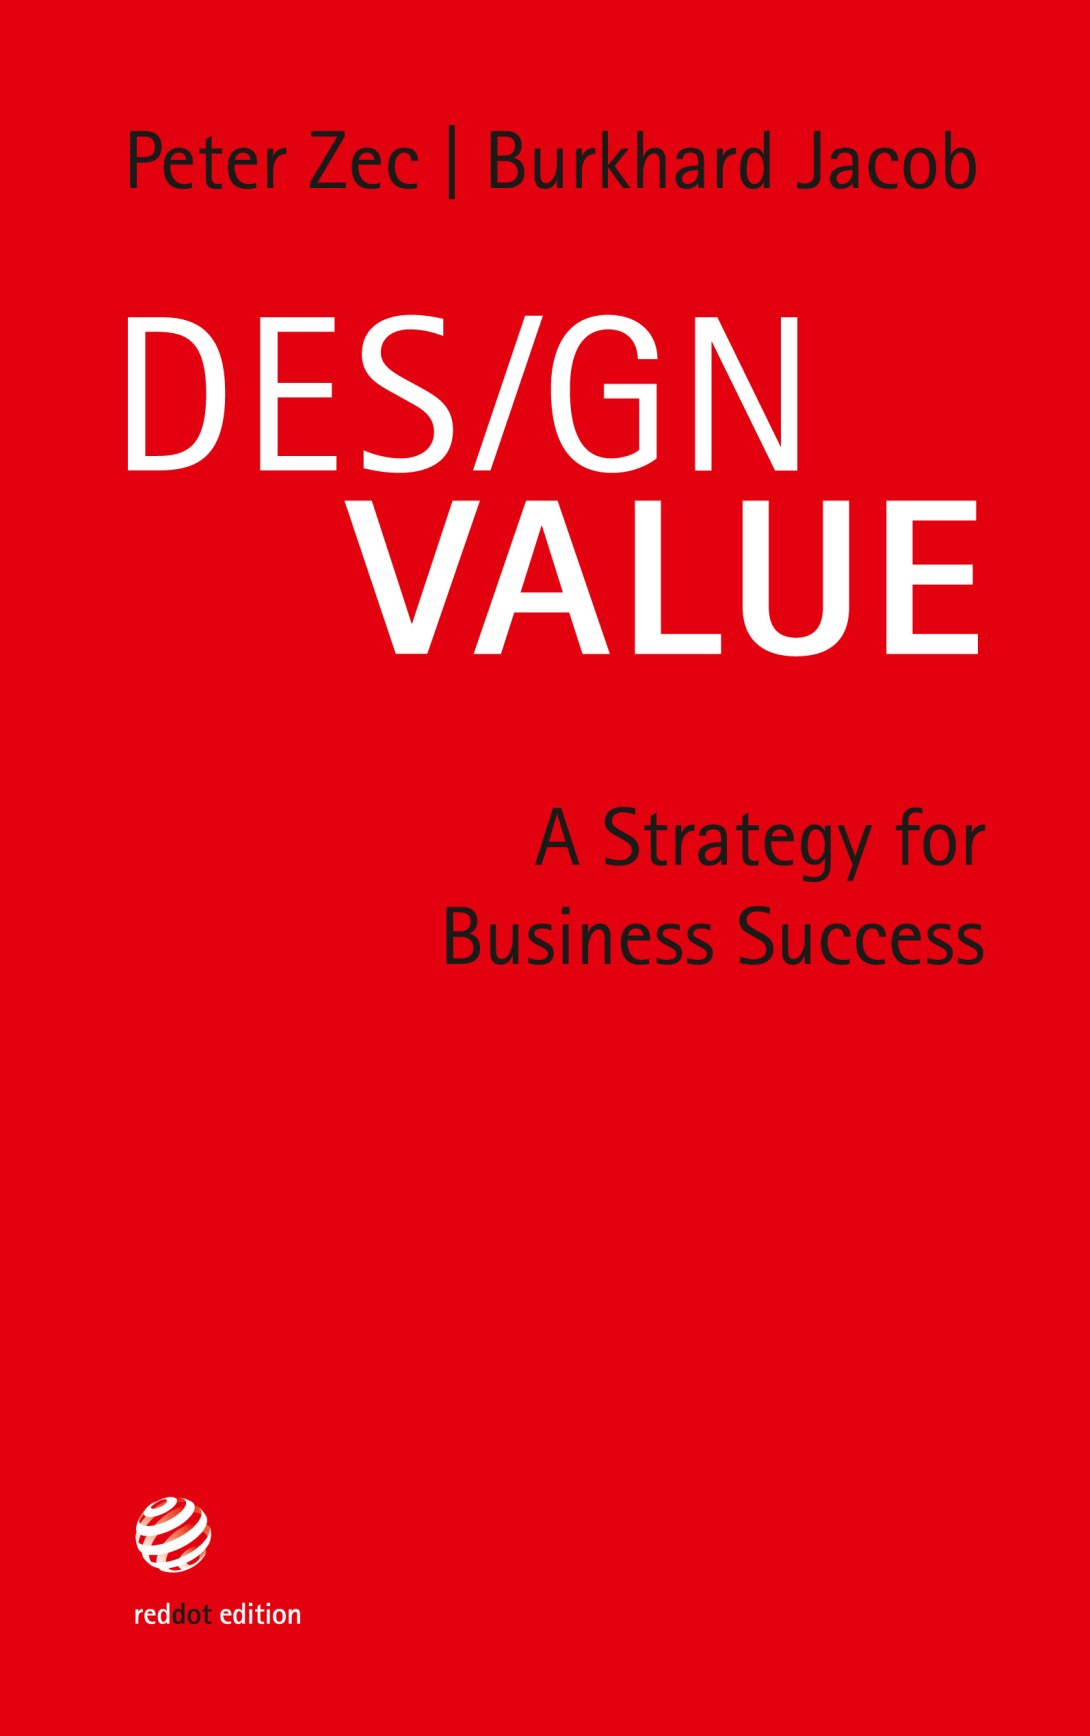 『Design Value – A strategy for business success』一書封面